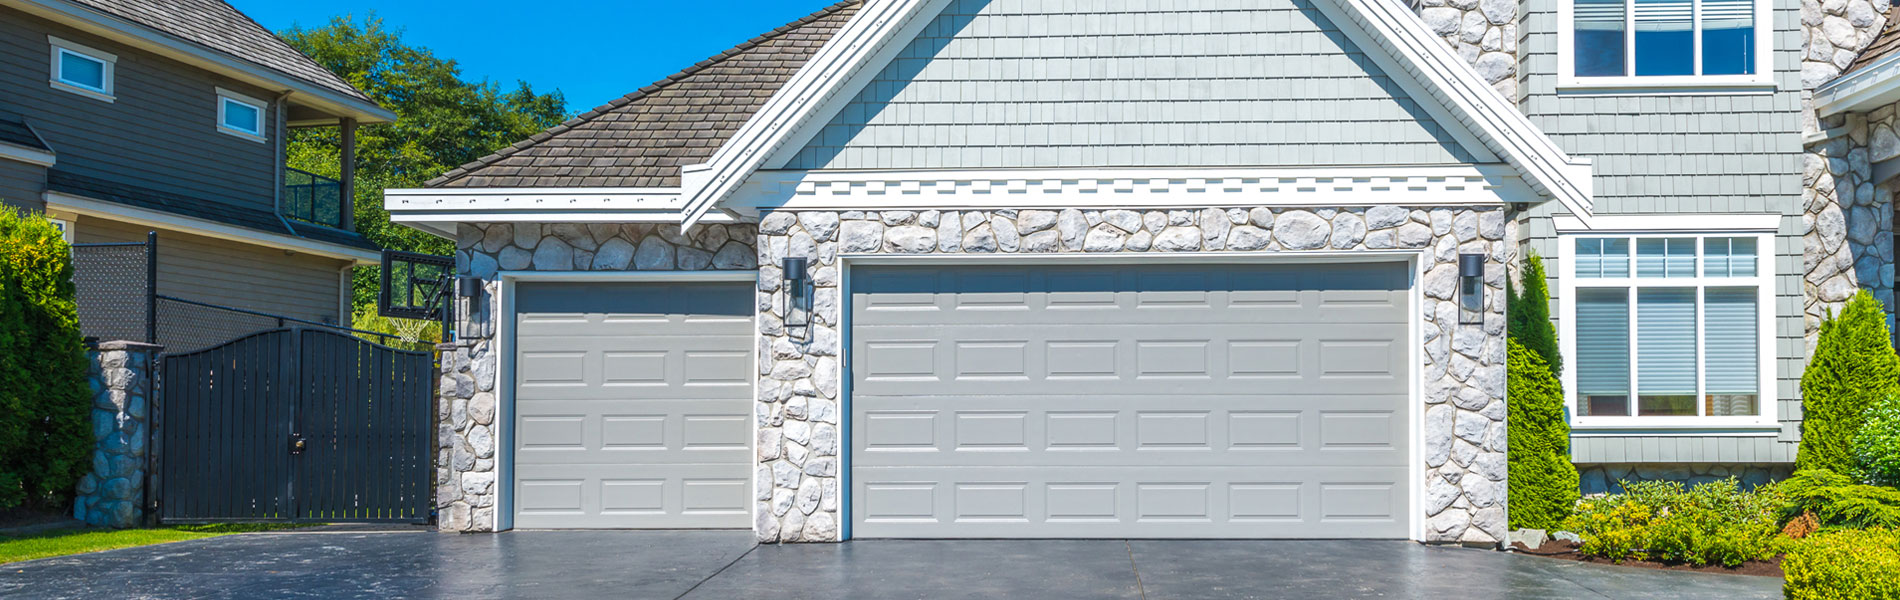 Eagle Garage Door Hastings-On-Hudson, NY 914-228-1862